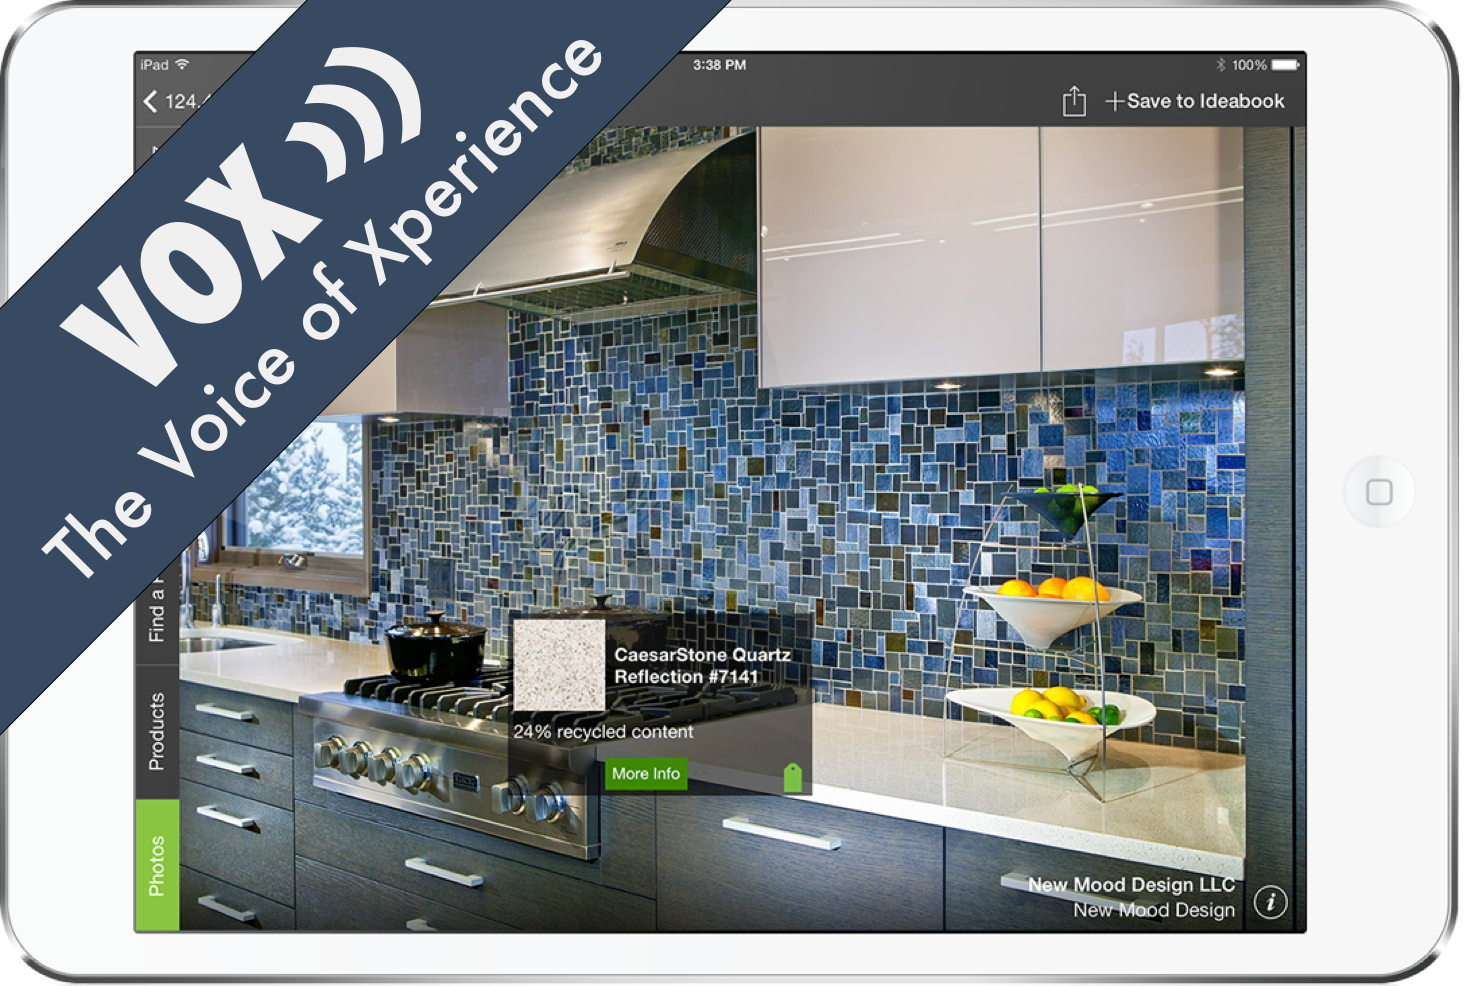 Houzz---the Alluring App for Home Remodelers and Wannabes. A VOX column by Wade Roush